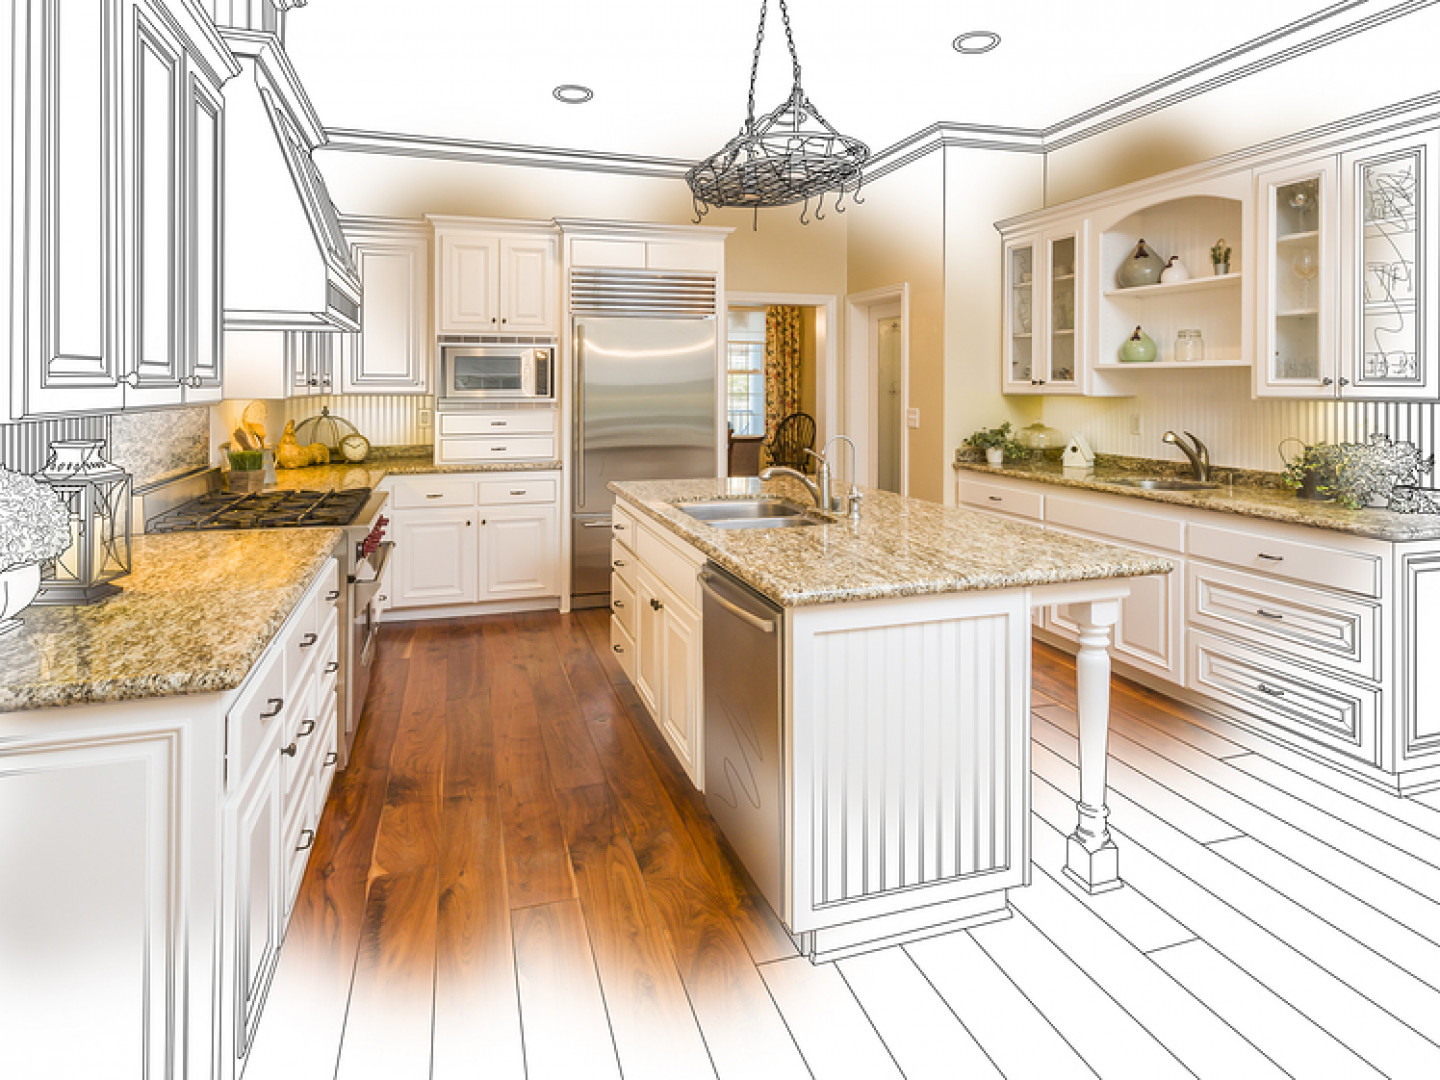 Update Your Home with Fine Renovations